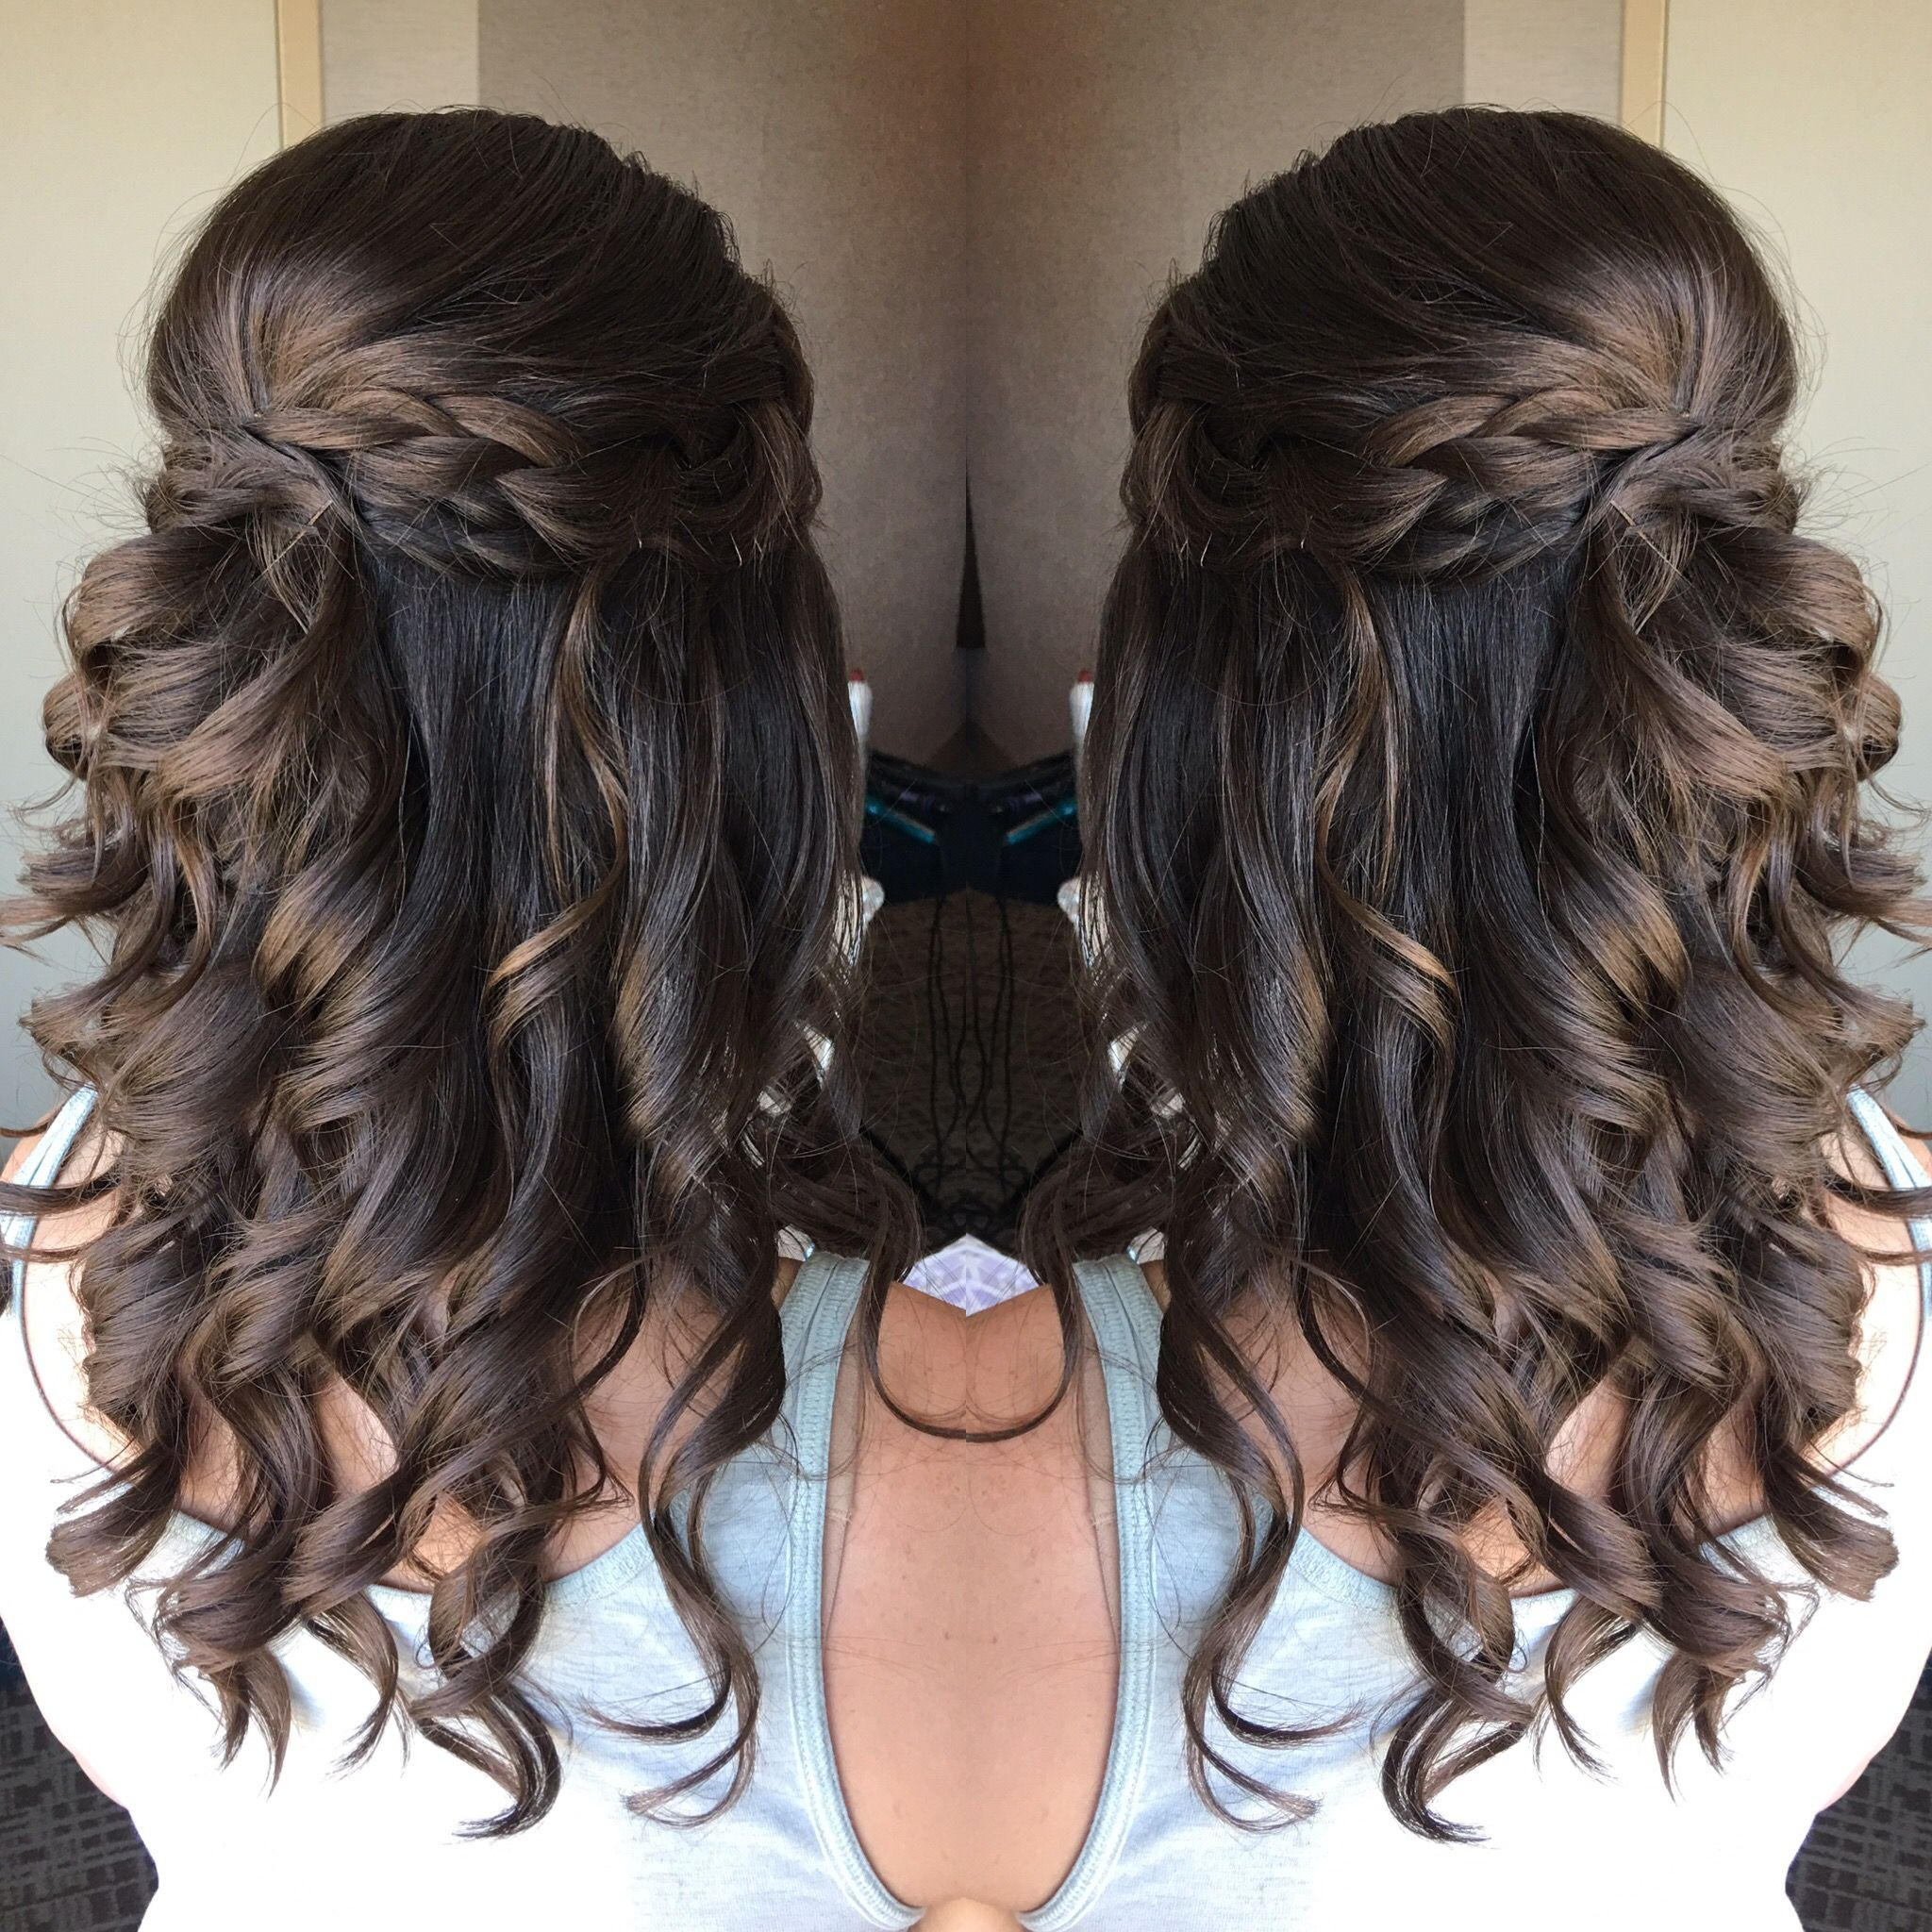 Braided Half Up Half Down Wedding Hairstyle Bridesmaid Hair Down Hair Down With Braid Wedding Hair Down